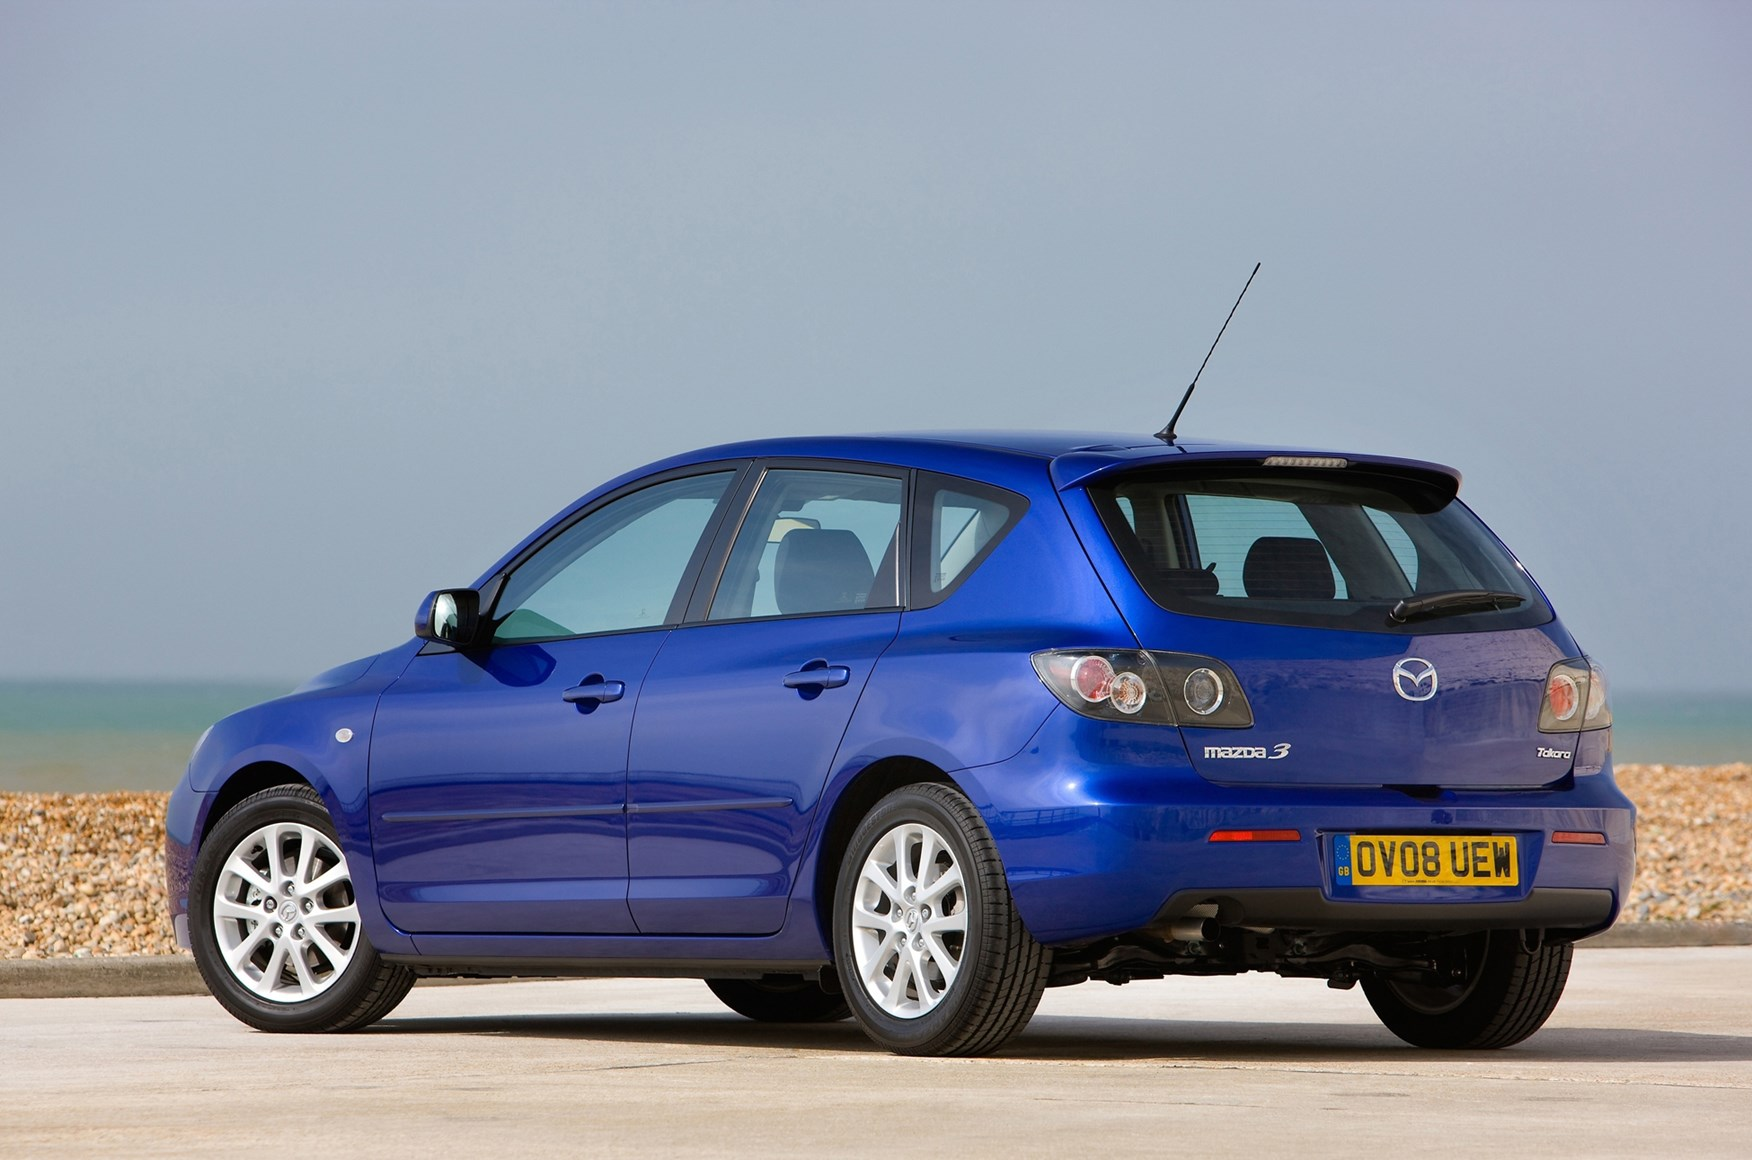 Used Mazda 3 Hatchback (2004 - 2008) Review | Parkers